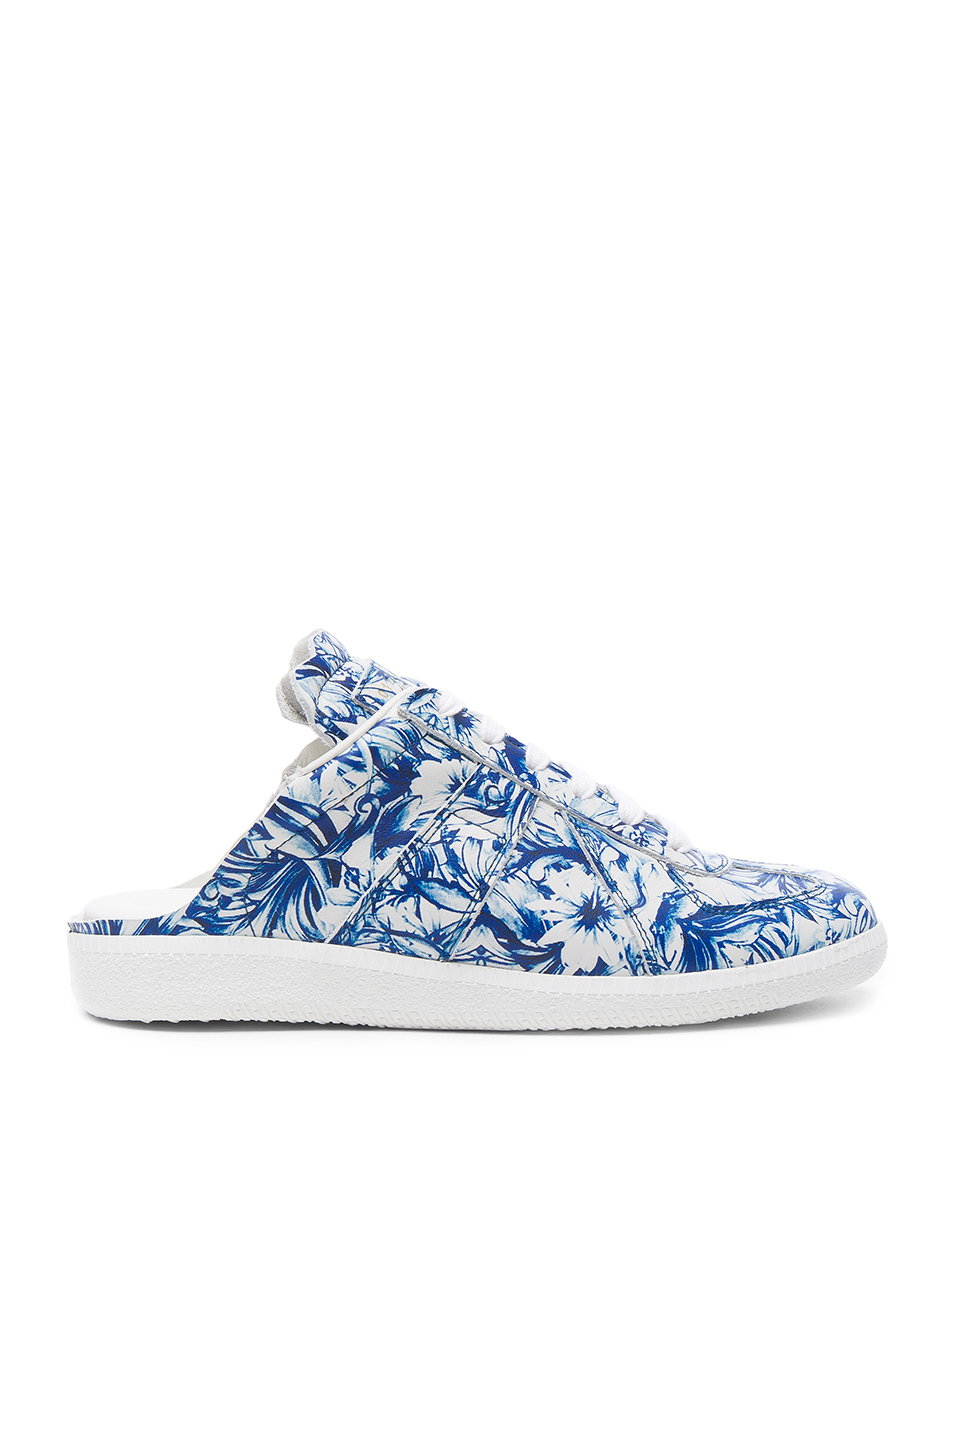 Maison Margiela Floral Leather Sneaker Slides